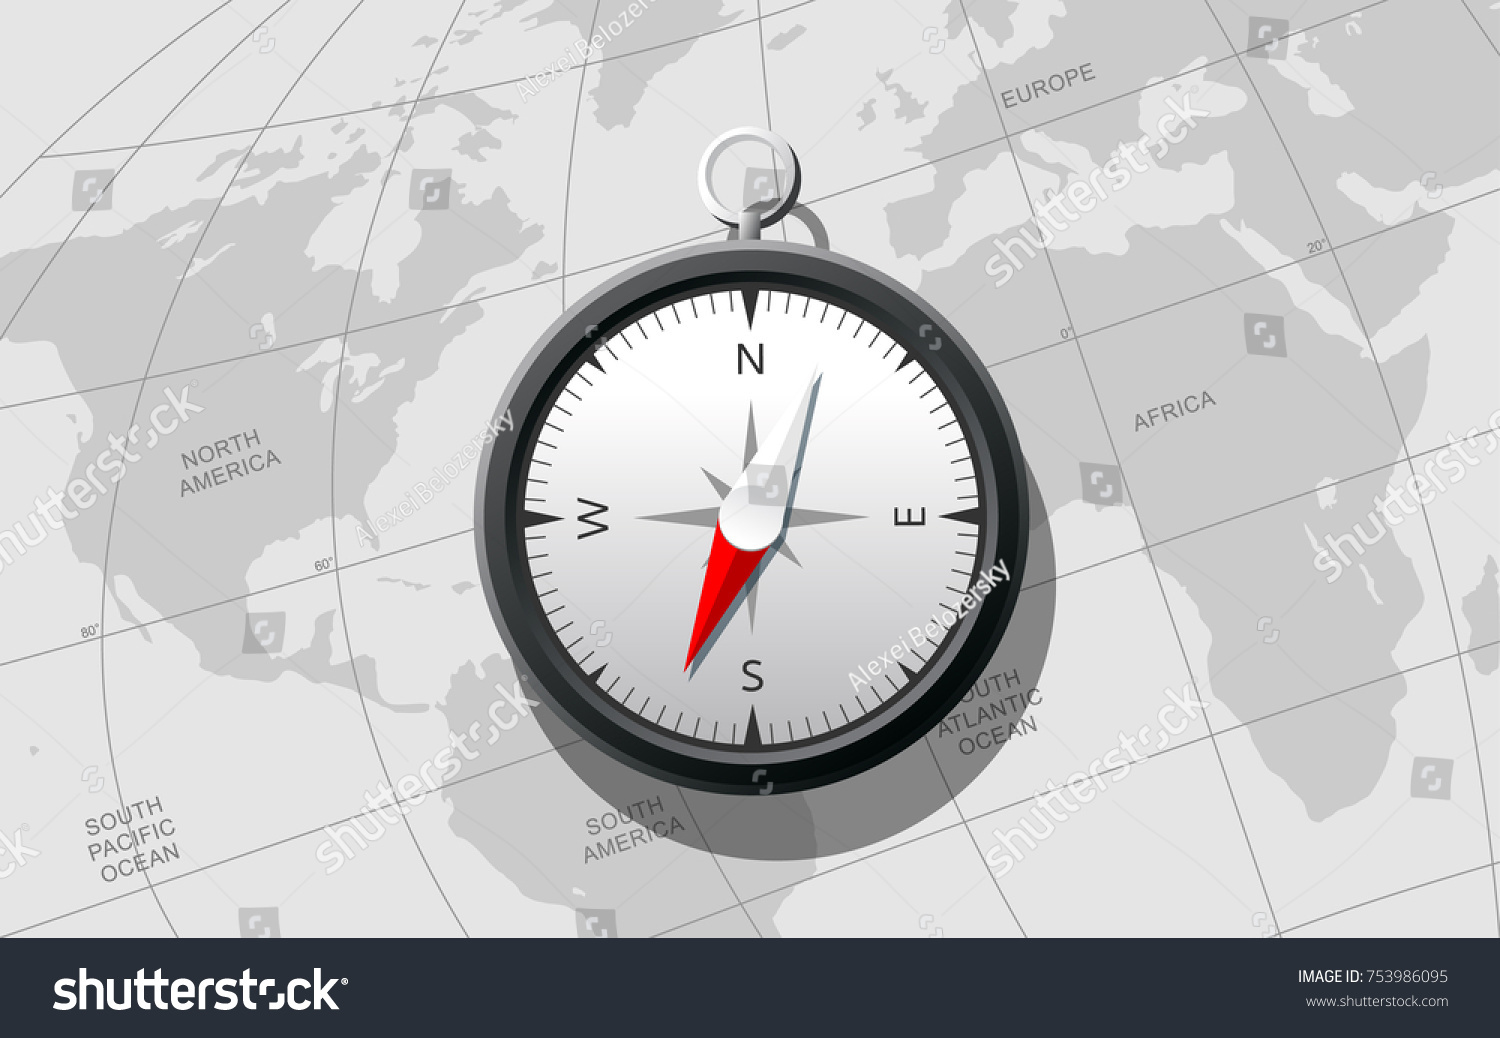 compass on the world map can be used in the themes of adventures geography